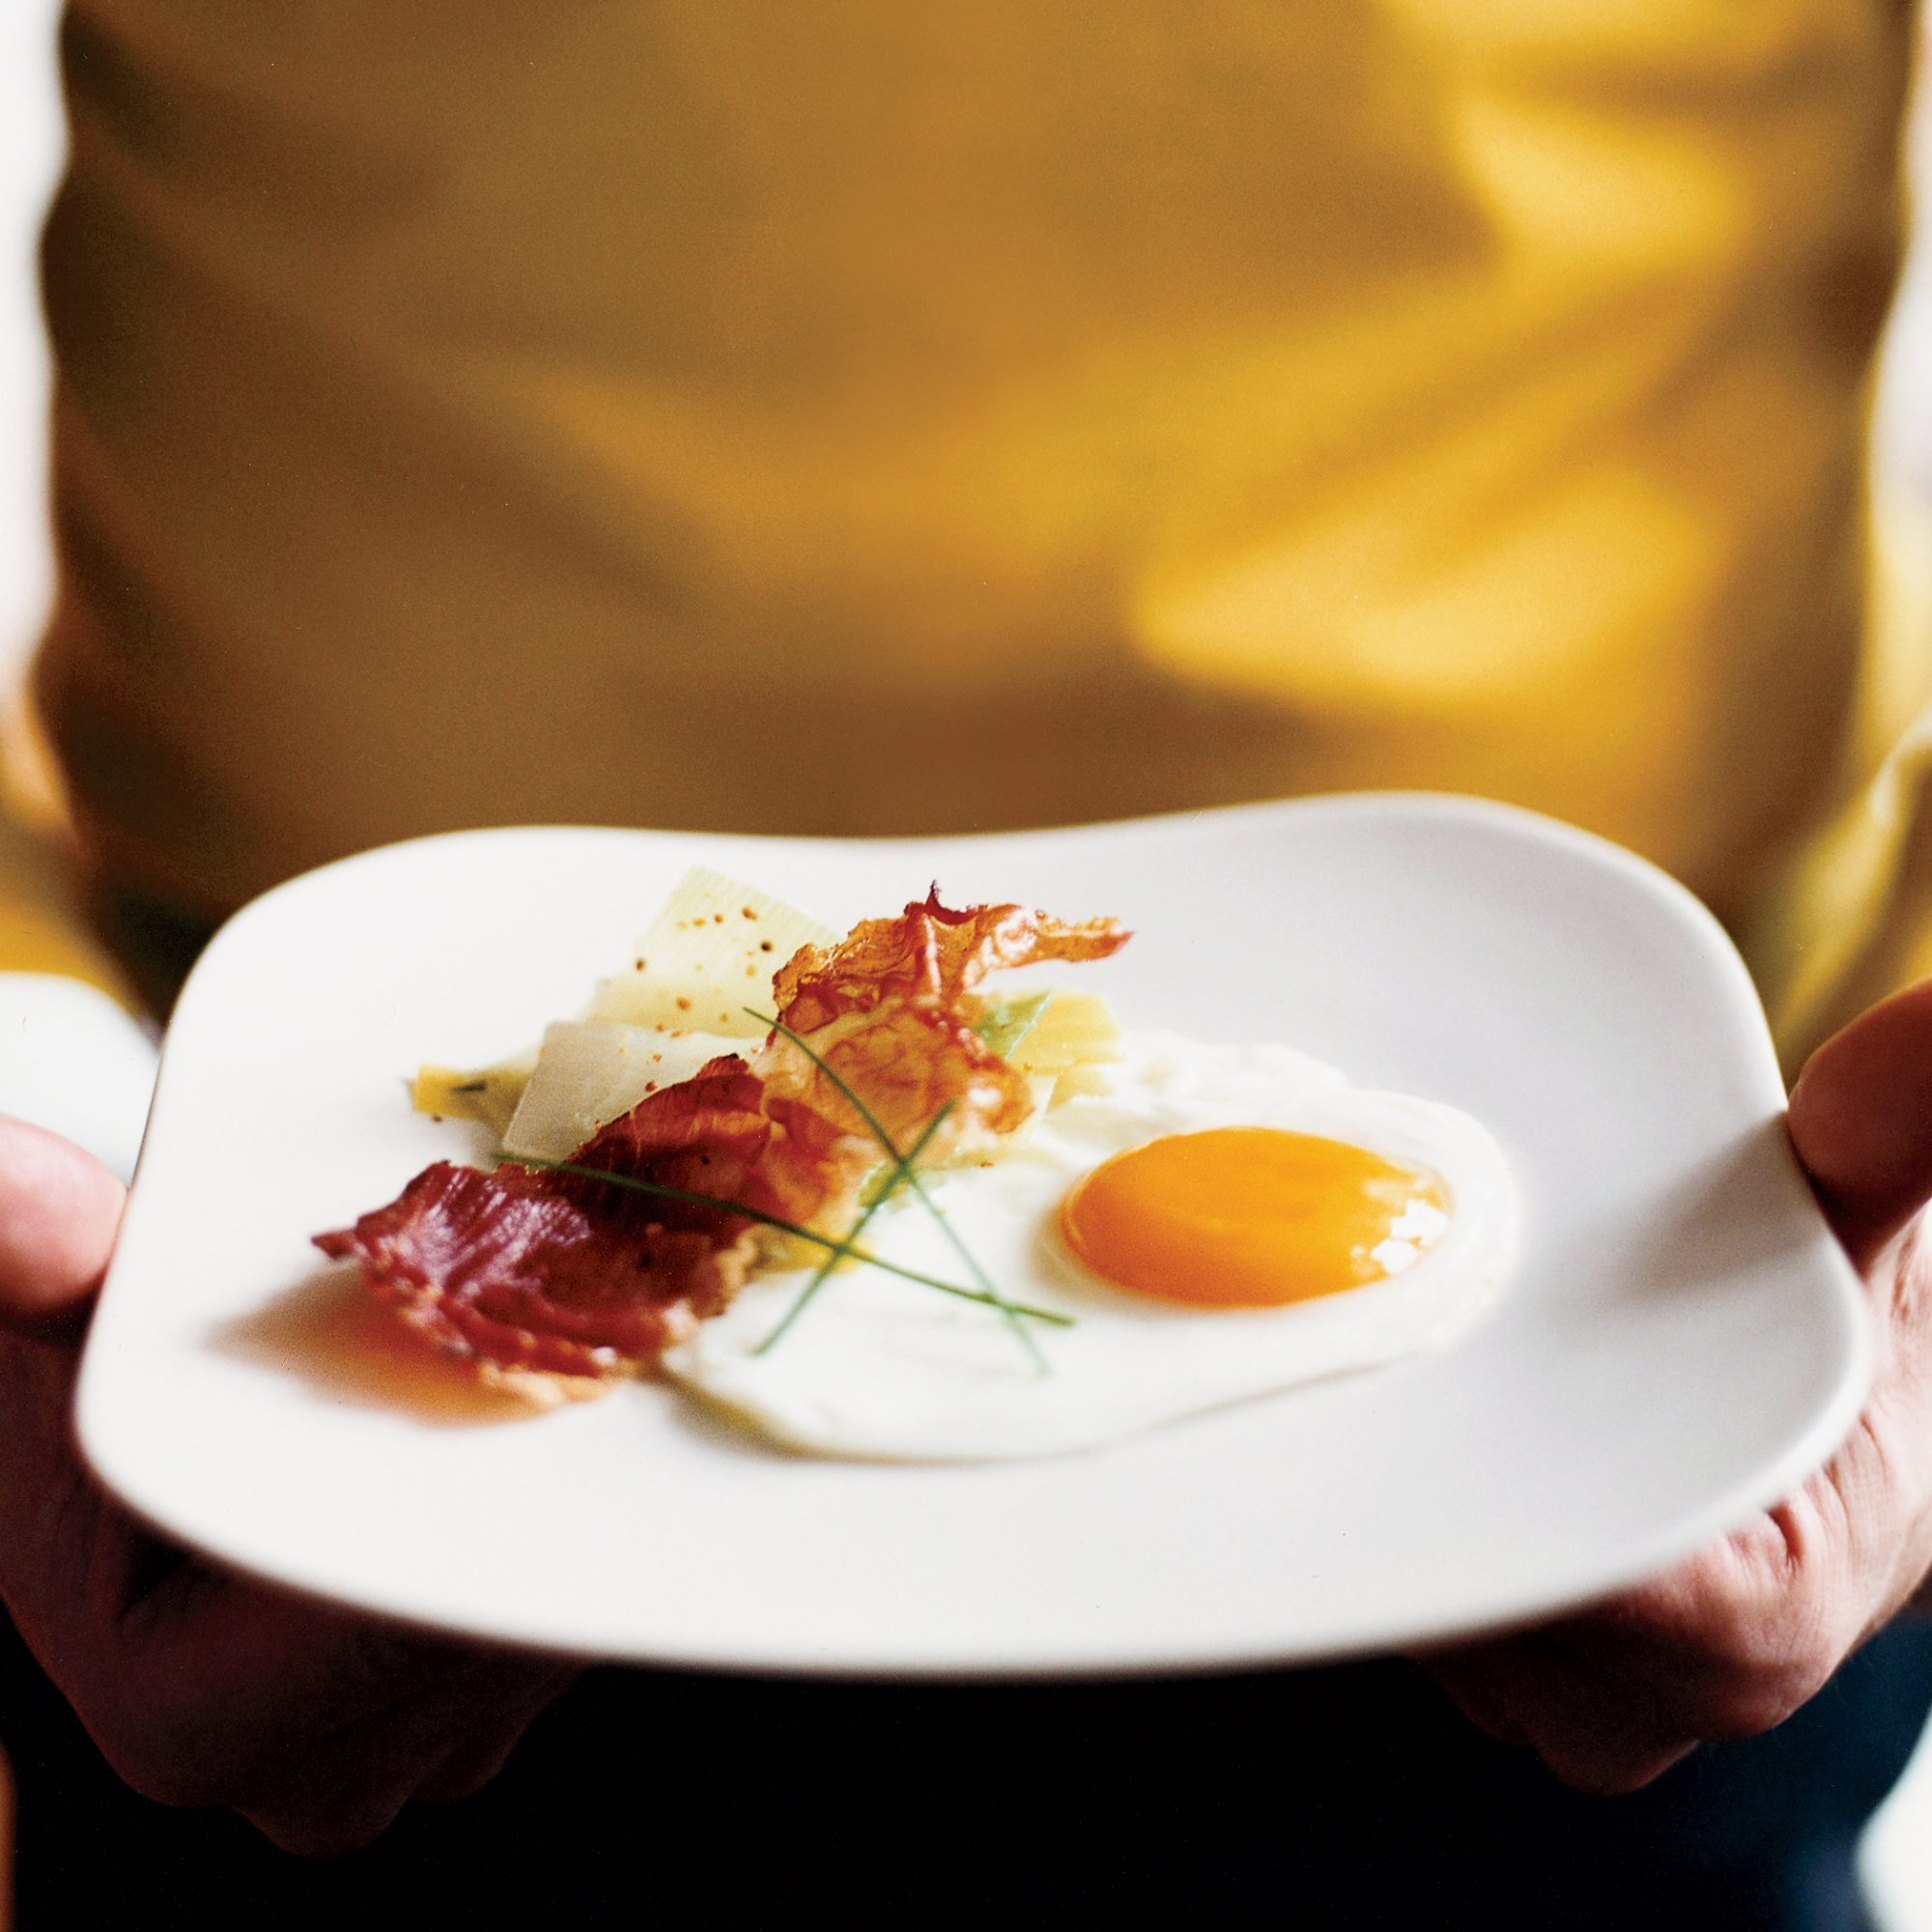 Leeks Vinaigrette with Fried Eggs and Smoked Prosciutto